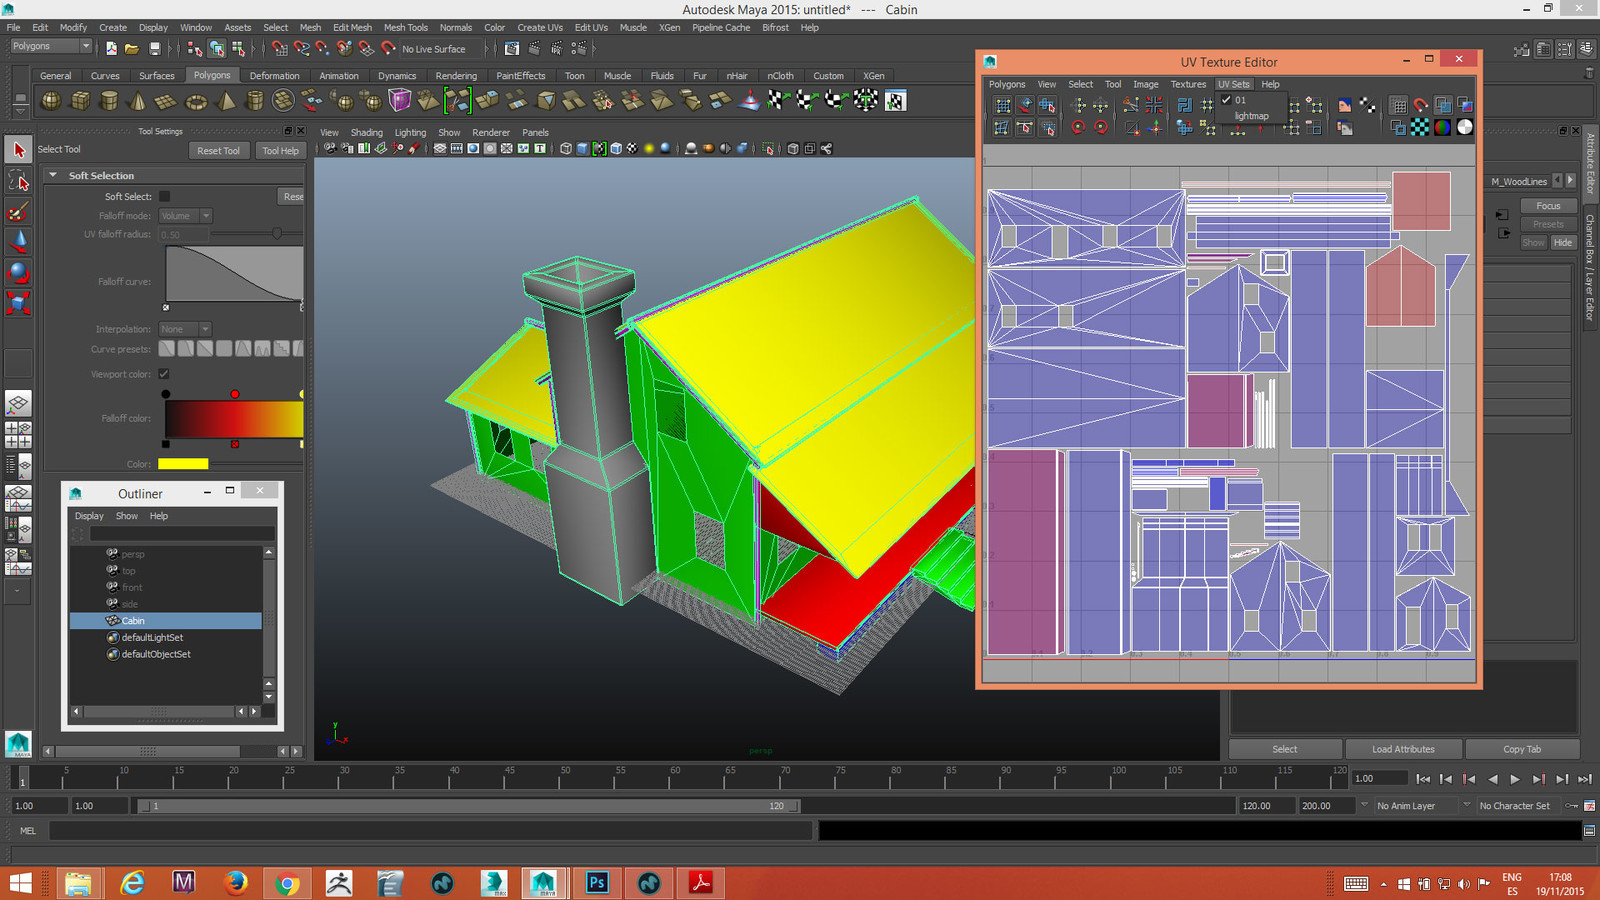 Cabin Wood with his Uv Map